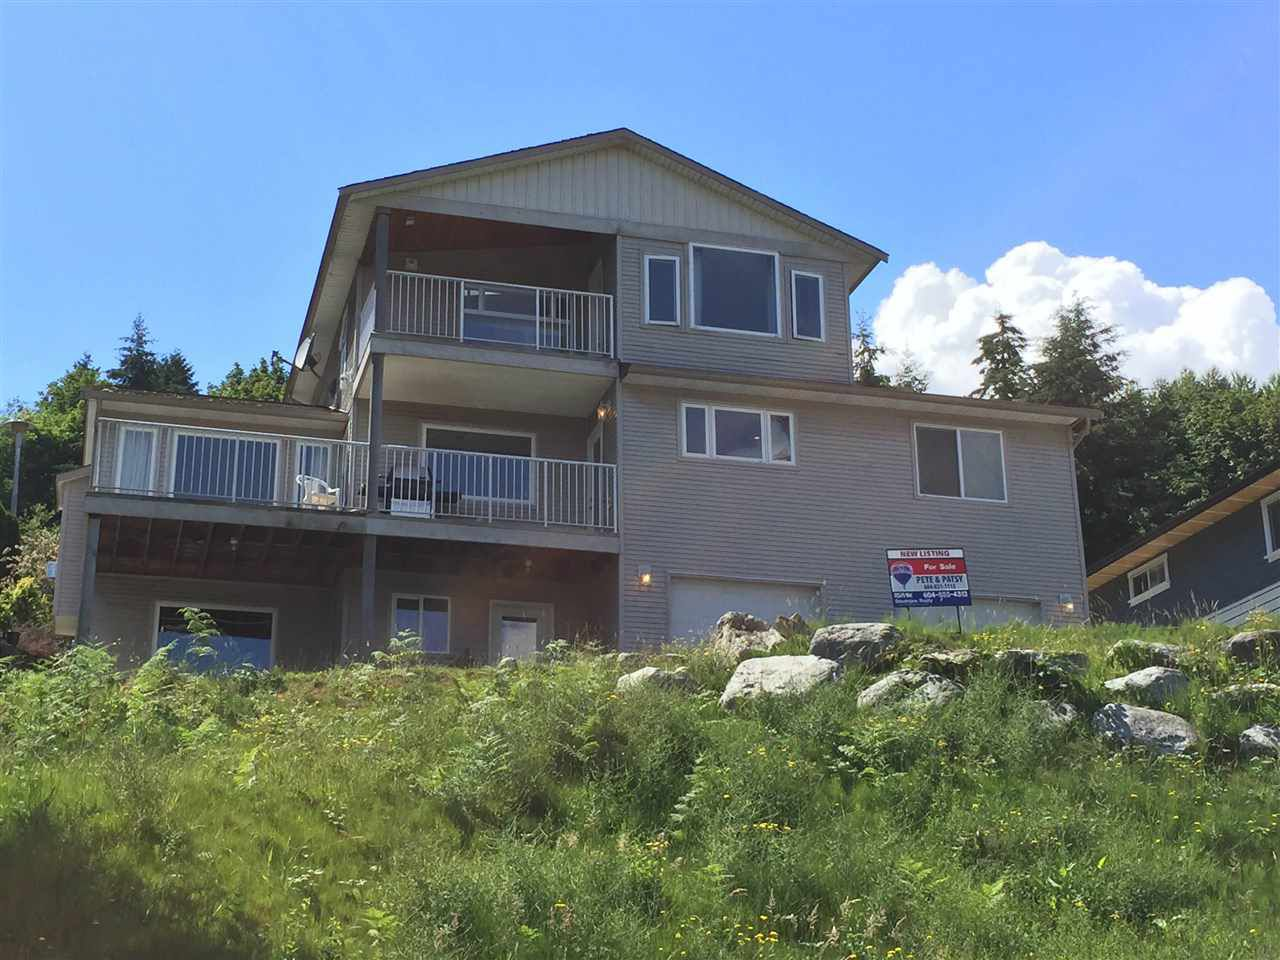 Photo 2: Photos: 813 BAYVIEW HEIGHTS Road in Gibsons: Gibsons & Area House for sale (Sunshine Coast)  : MLS®# R2081032